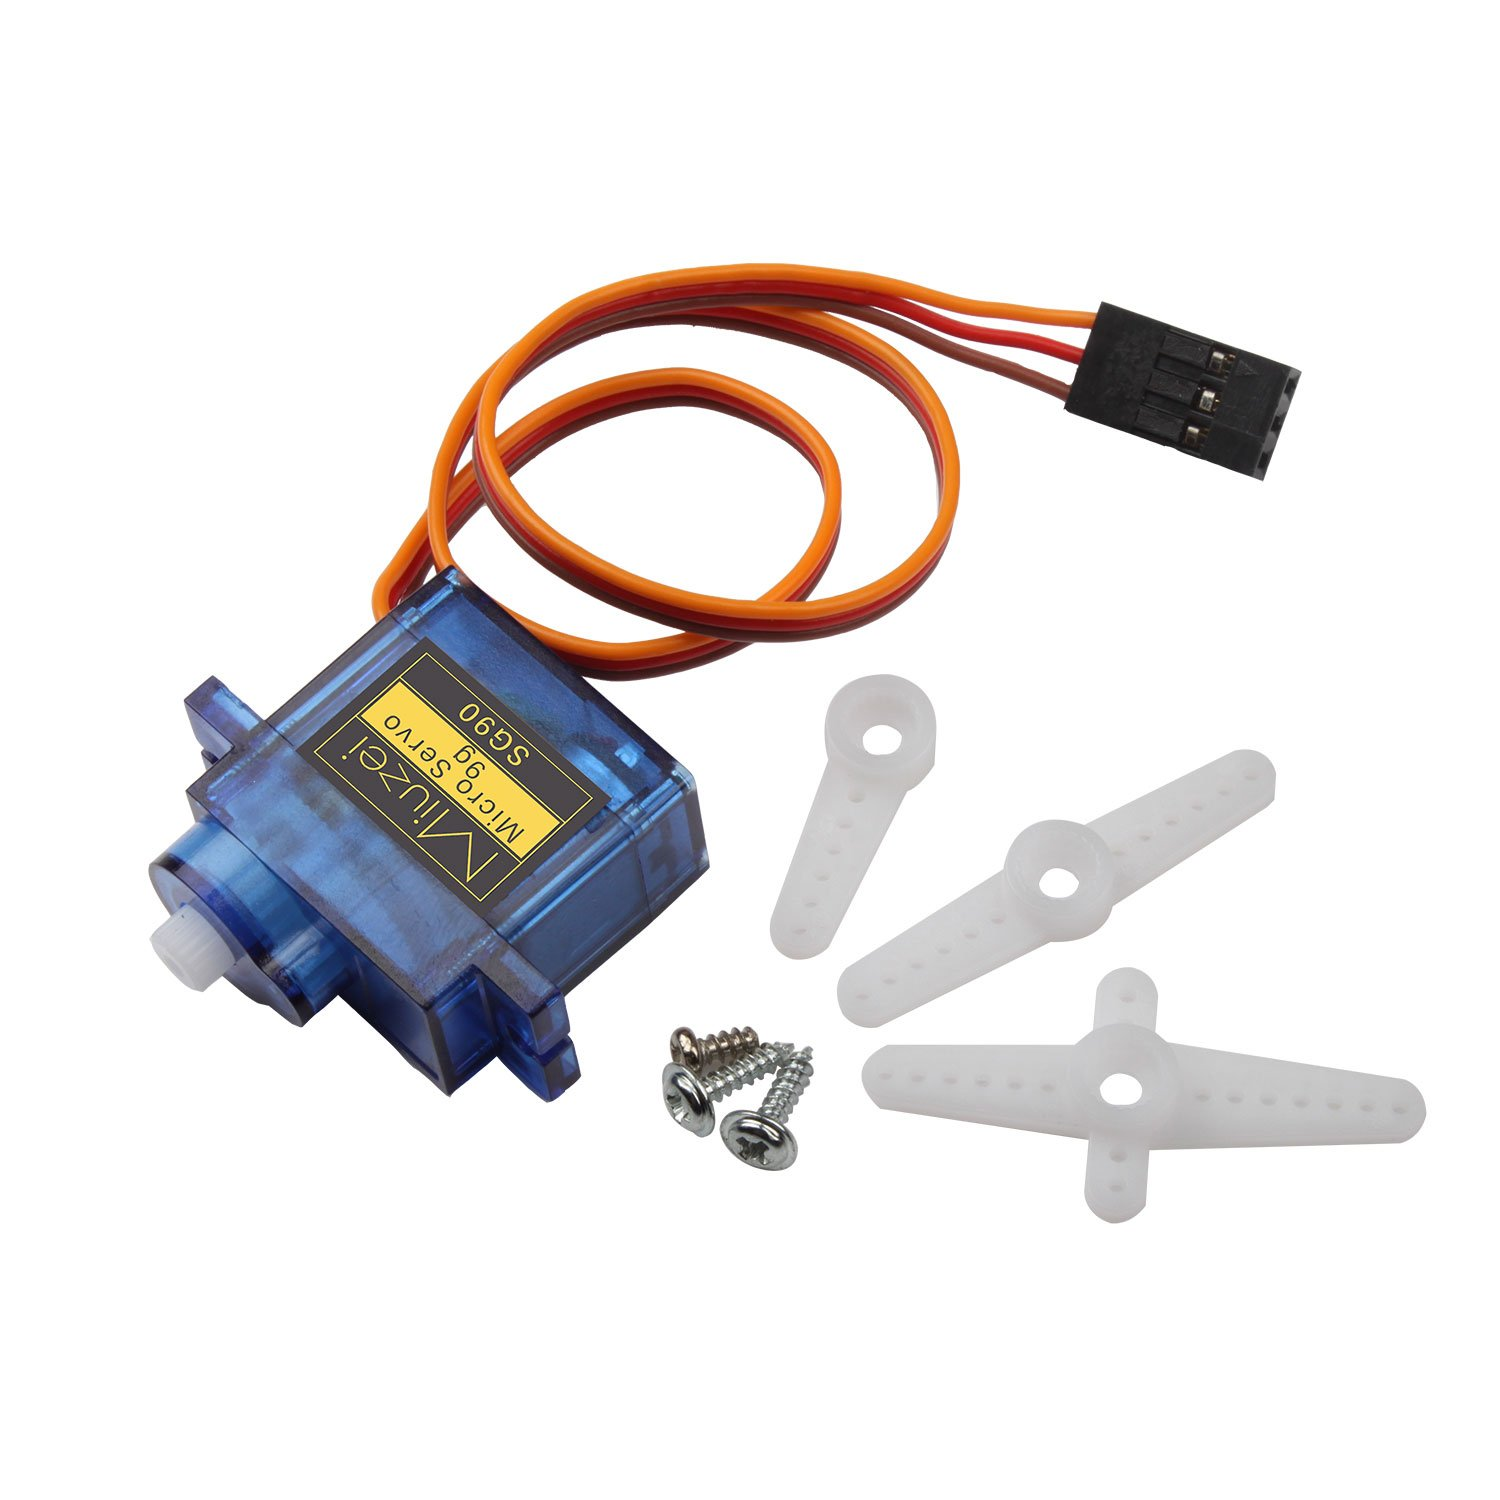 10 pcs SG90 9G Micro Servo Motor Kit for RC Robot Arm Helicopter Airplane Remote Control by Miuzei (Image #2)